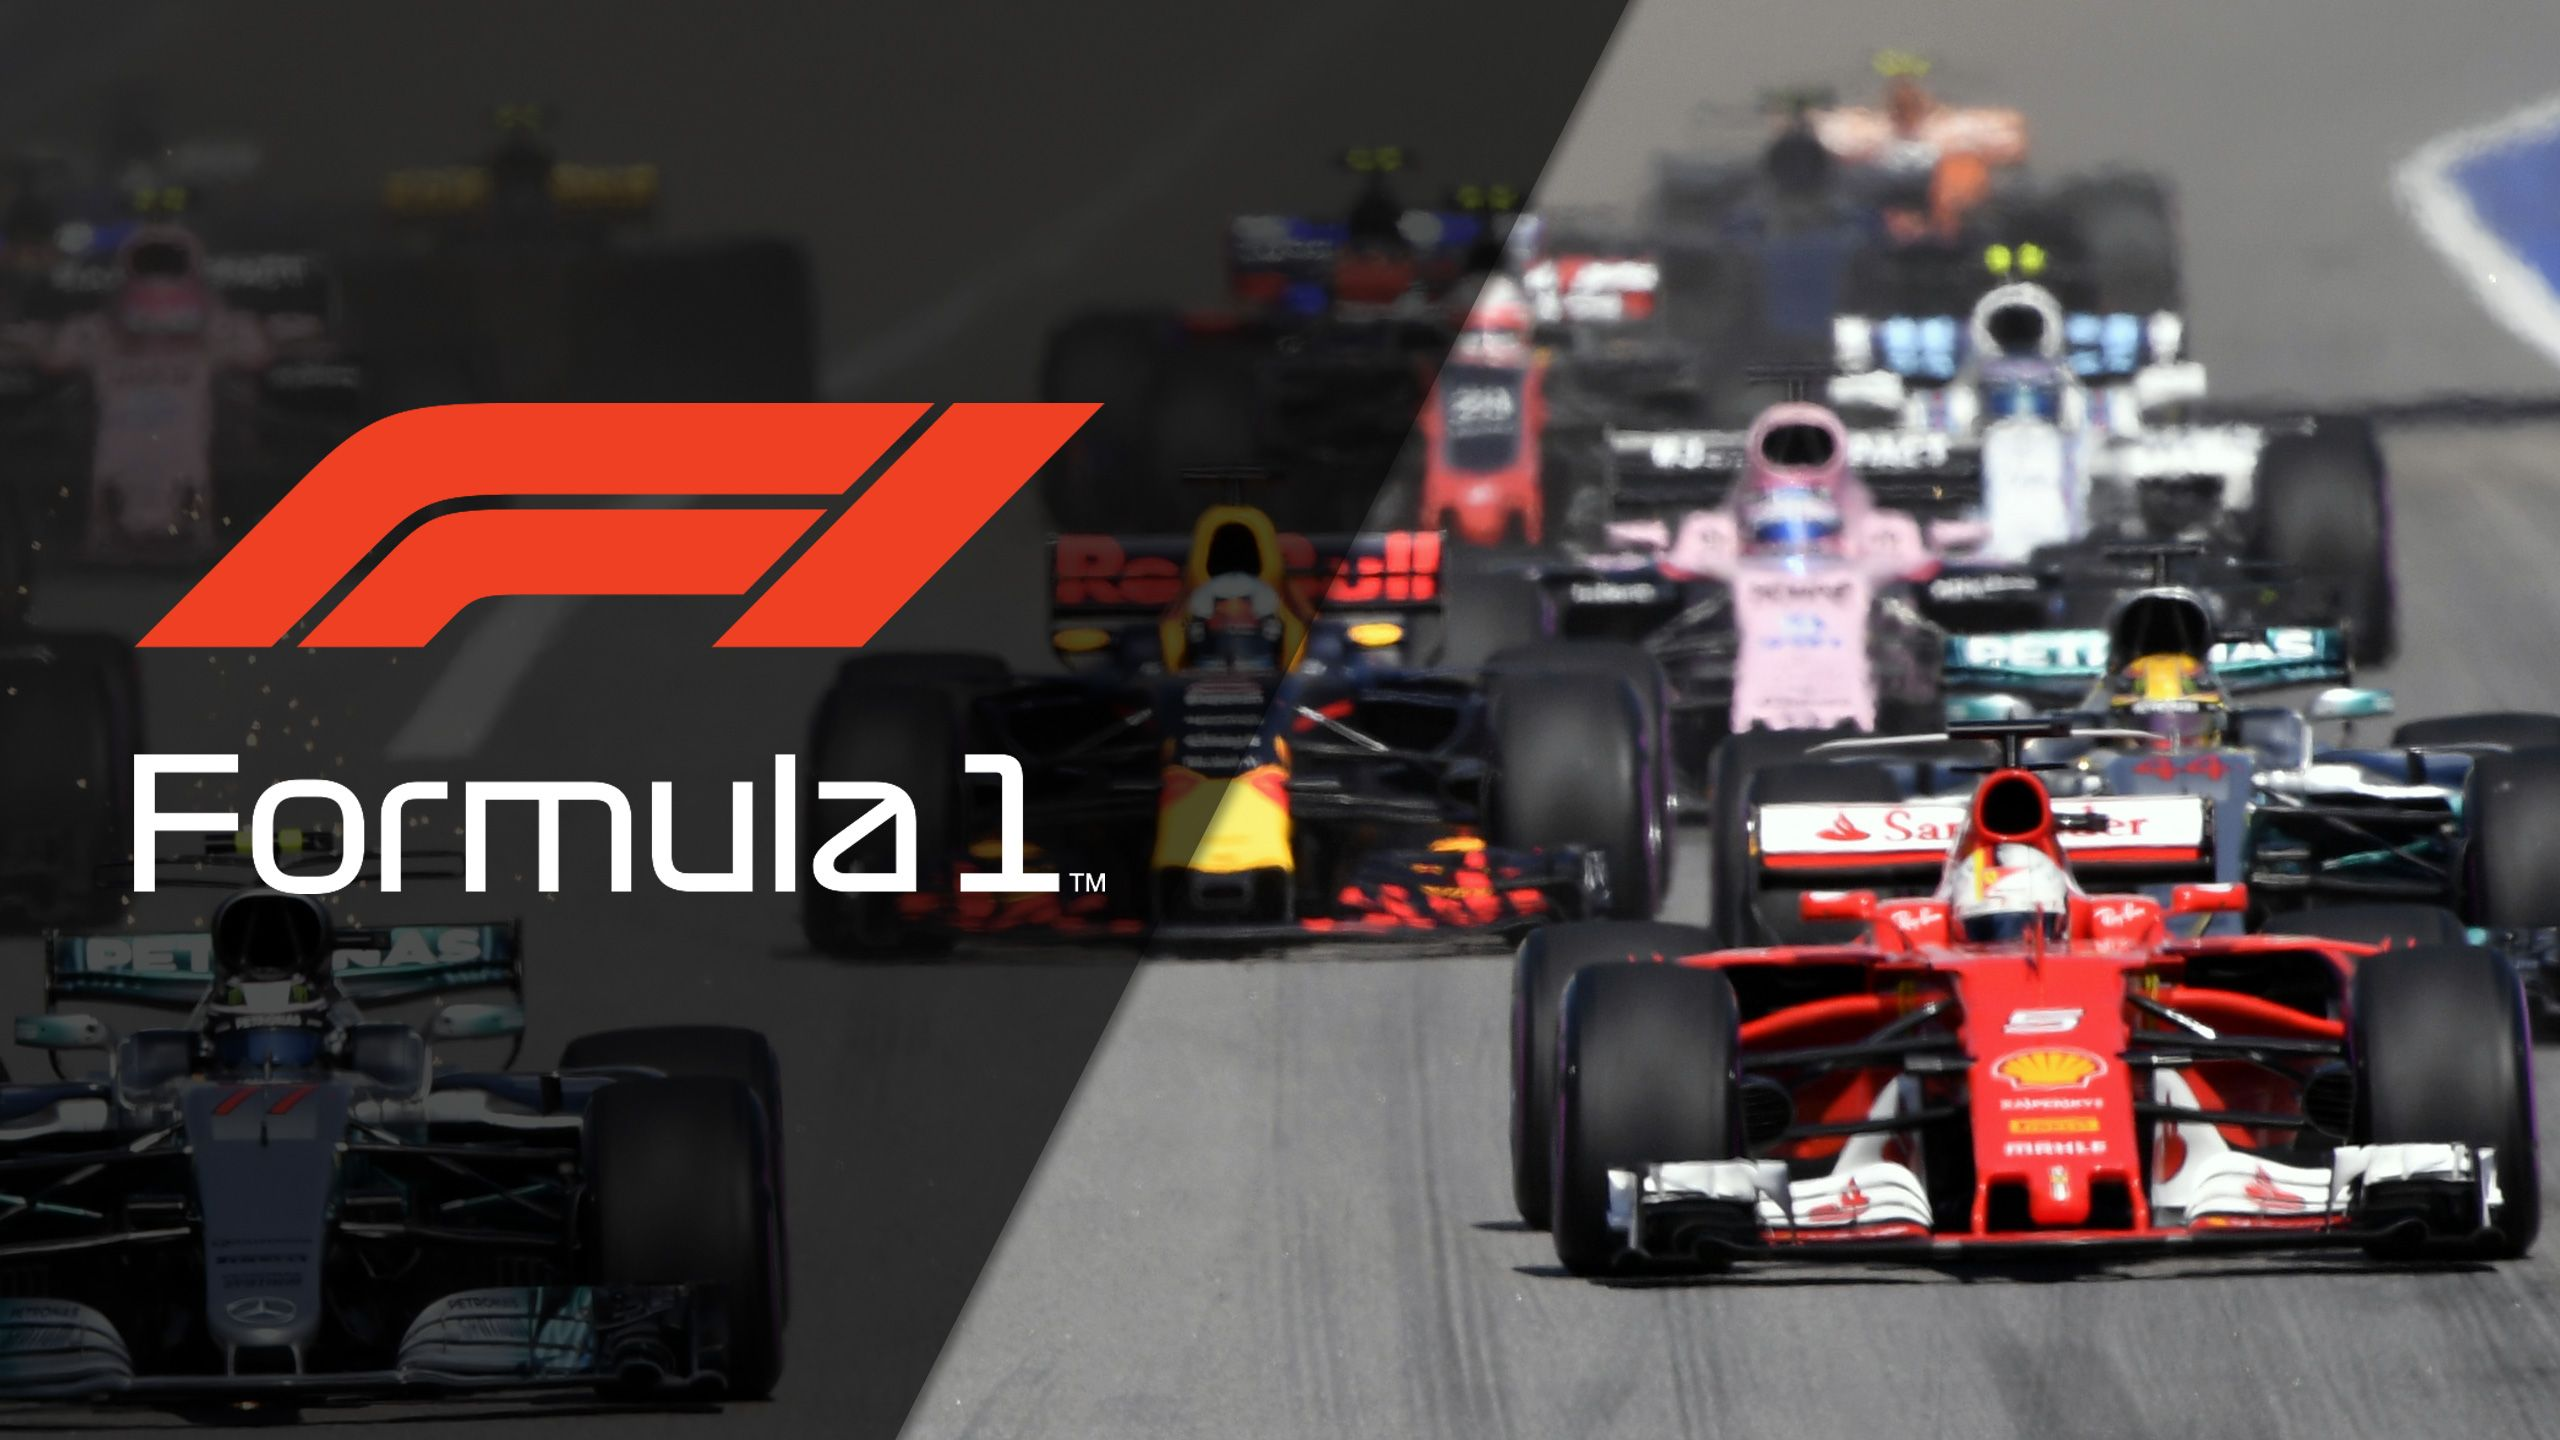 Formula 1 Monaco Grand Prix coverage presented by Mothers Polish